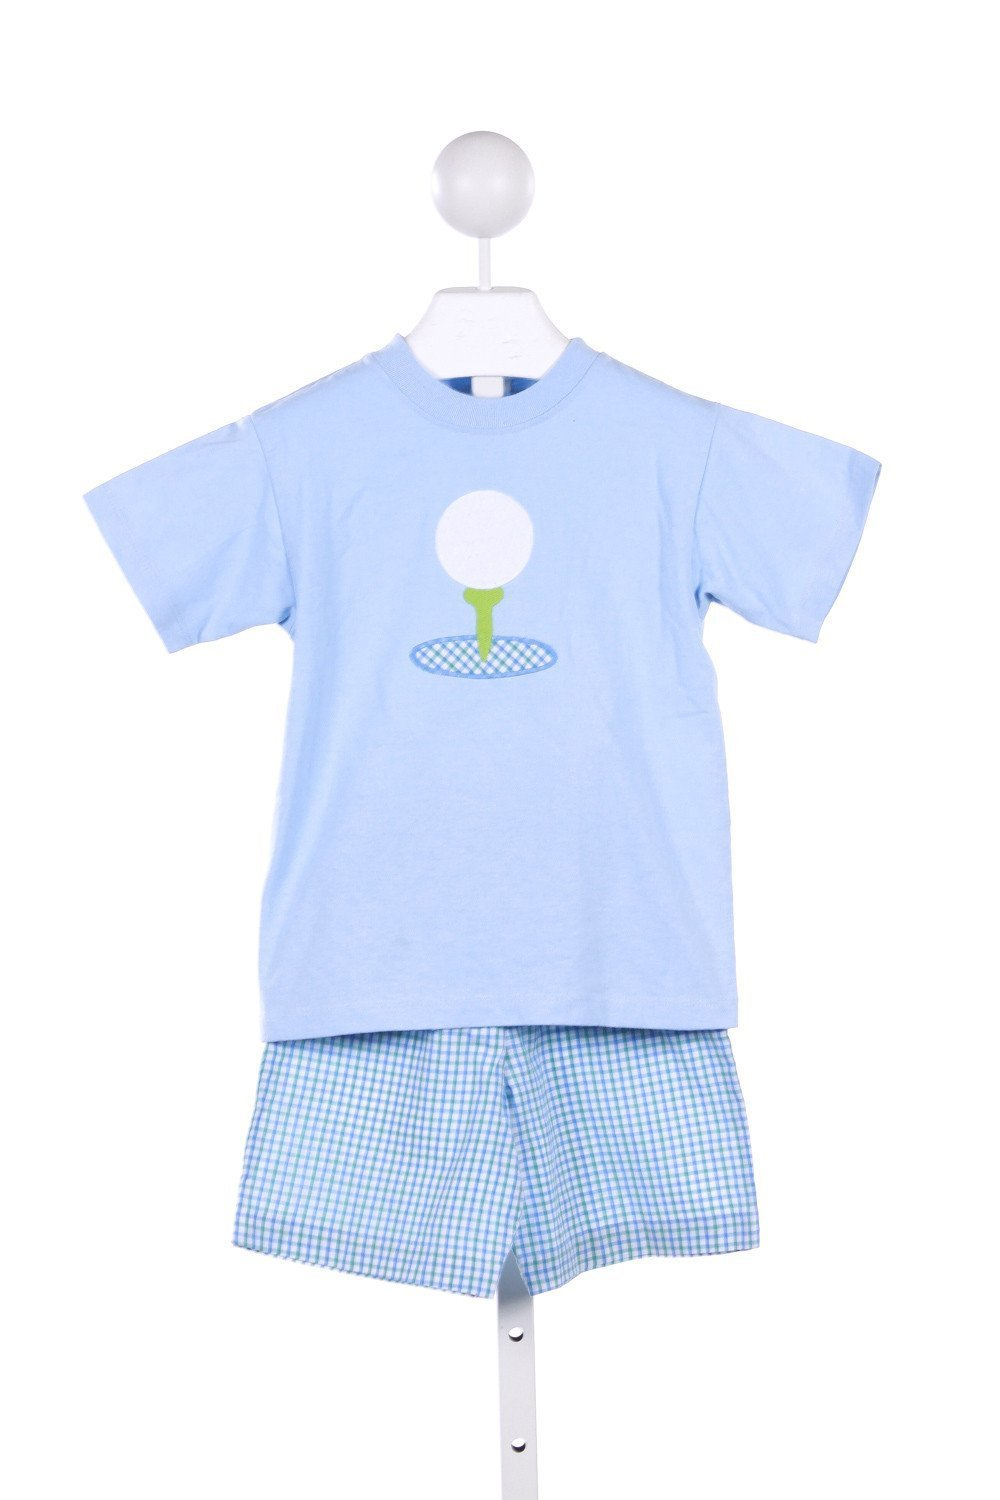 BAILEY BOYS 2 PIECE BLUE KNIT TOP WITH GOLF APPLIQUE AND MATCHING CHECKED SHORTS